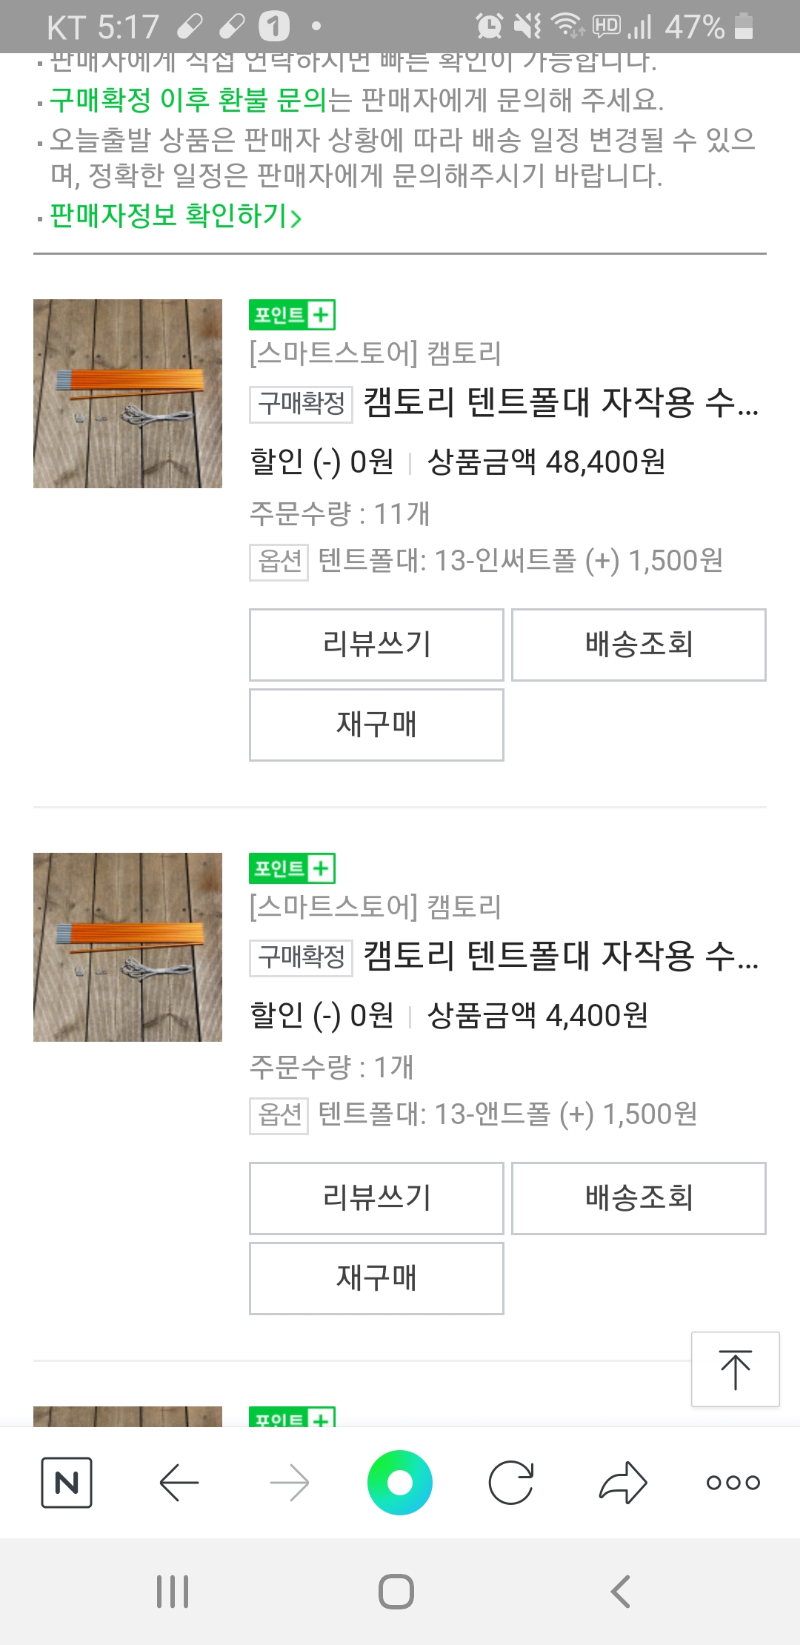 Screenshot_20200430-171714_NAVER.jpg